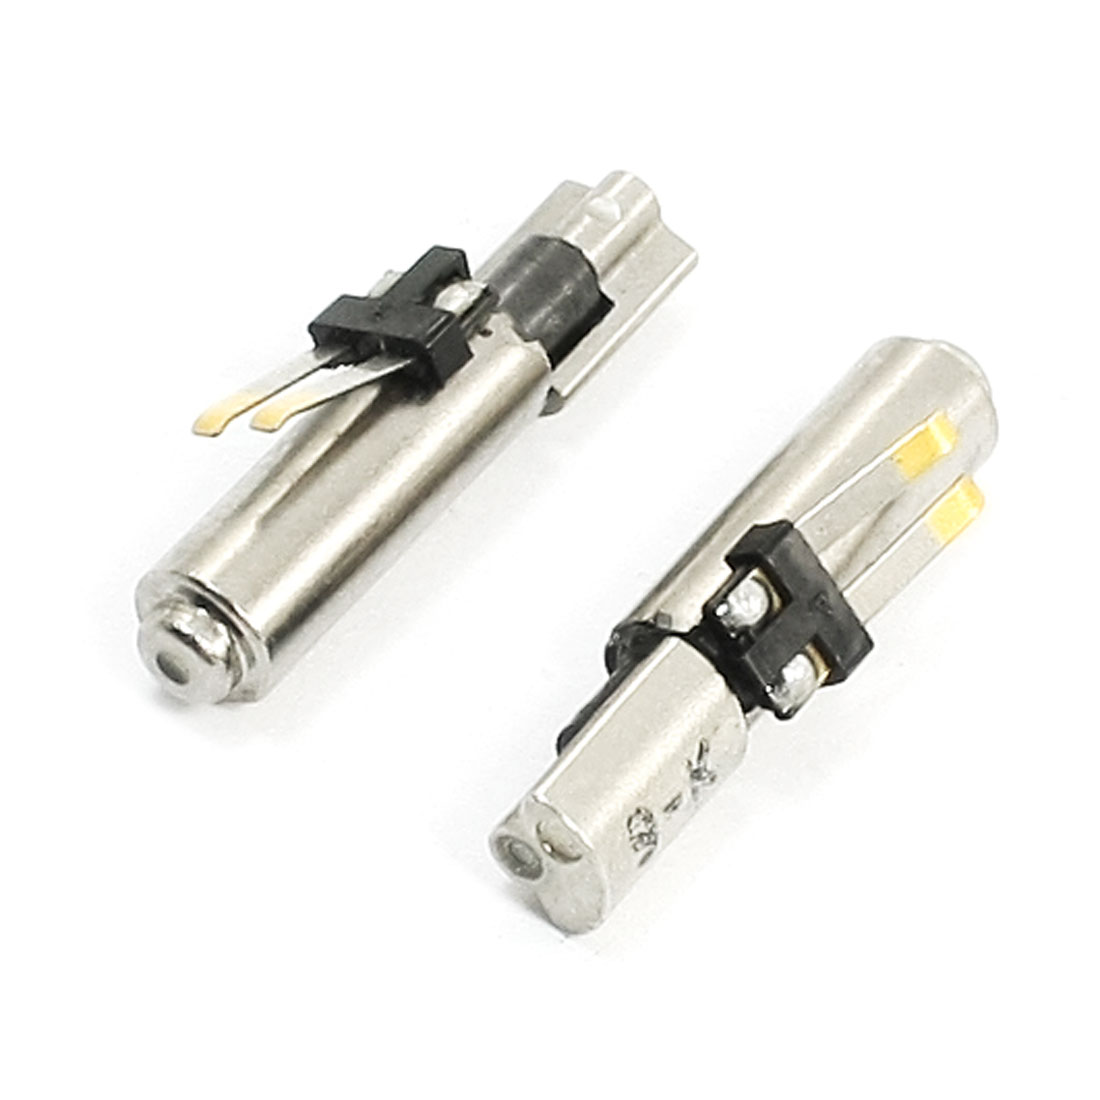 2PCS-4mmx12mm-3V-900RPM-Coreless-Vibration-Motor-for-Massagers